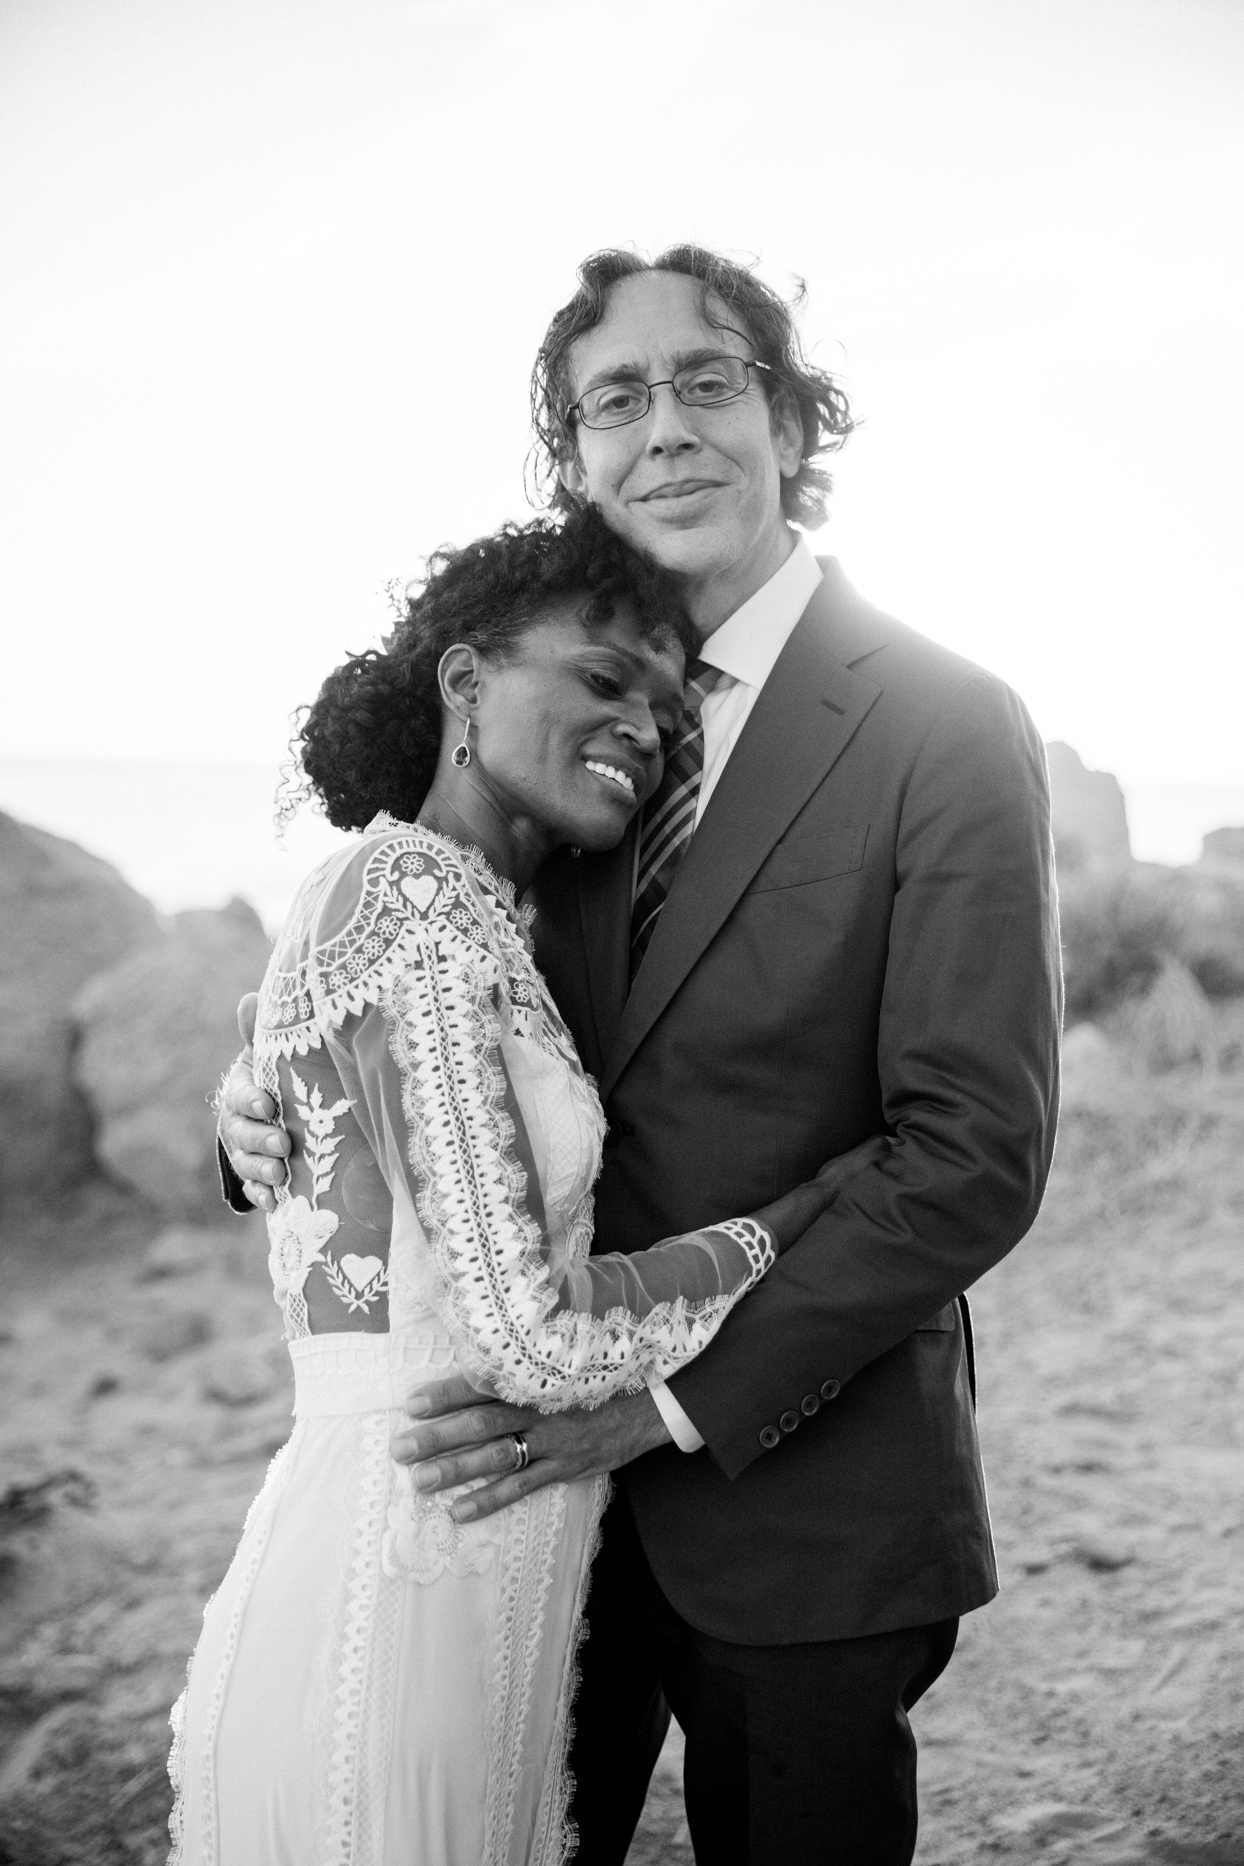 bride and groom embrace smiling on rocky beach